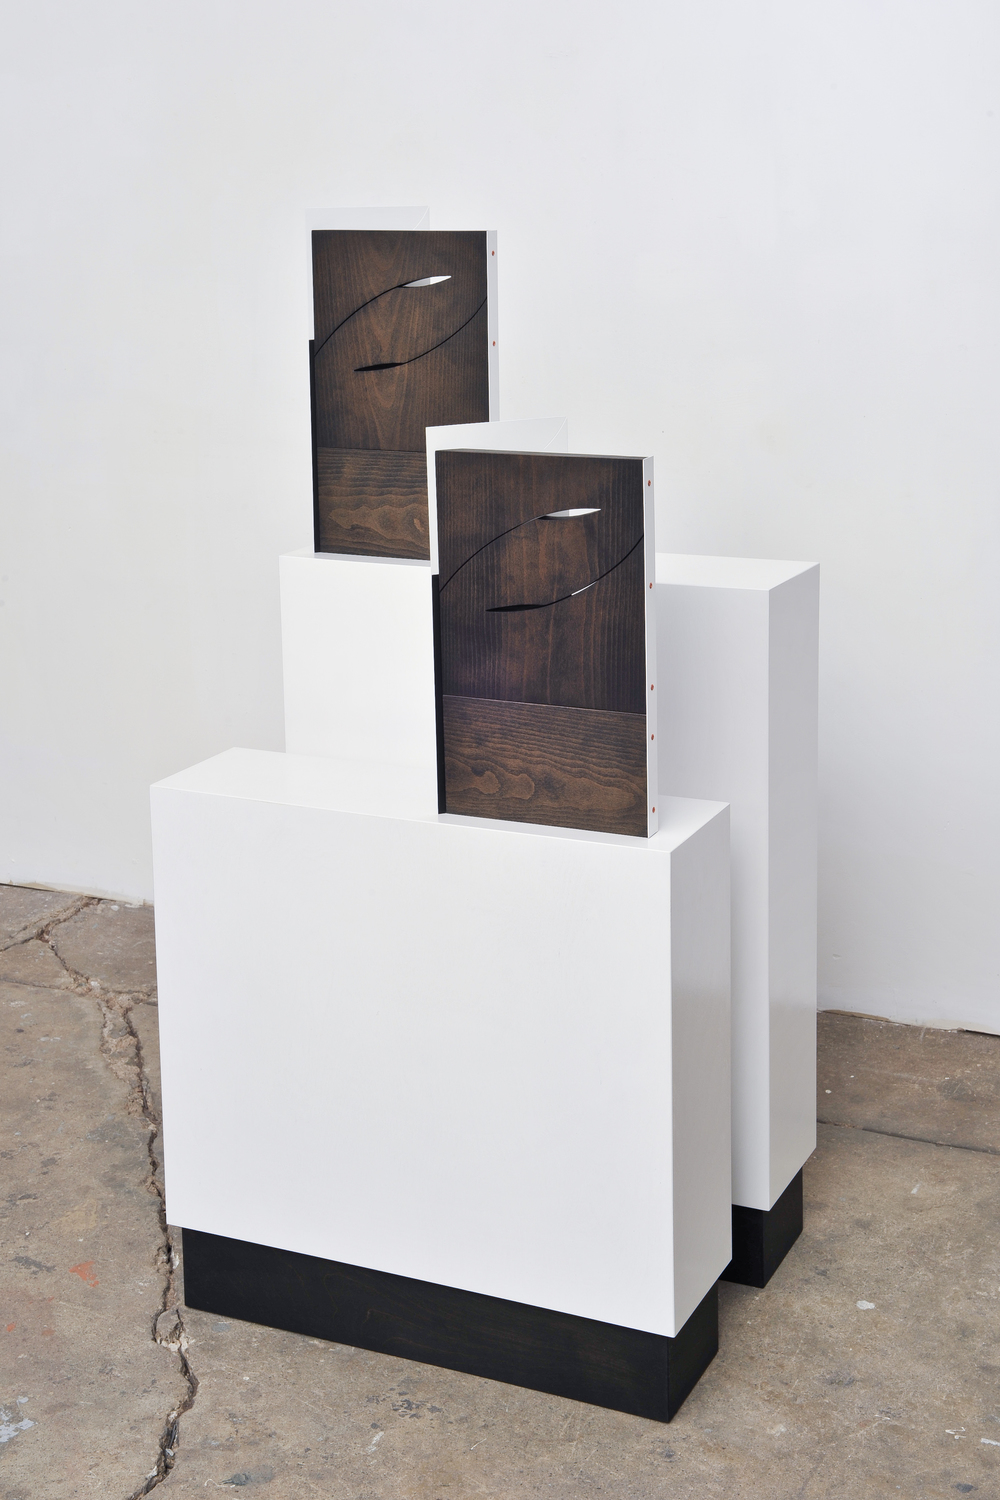 Wedges 2014 Euro-beech hardwood, steel, copper rivets, enamel, wax 2 parts, each: 48.5 x 40.6 x 11.4 cm / 19.1 x 16 x 4.5 in Plinths: 81.2 x 60.9 x 17.7 cm / 32 x 24 x 7 in and 60.9 x 60.9 x 17.7 cm / 24 x 24 x 7 in